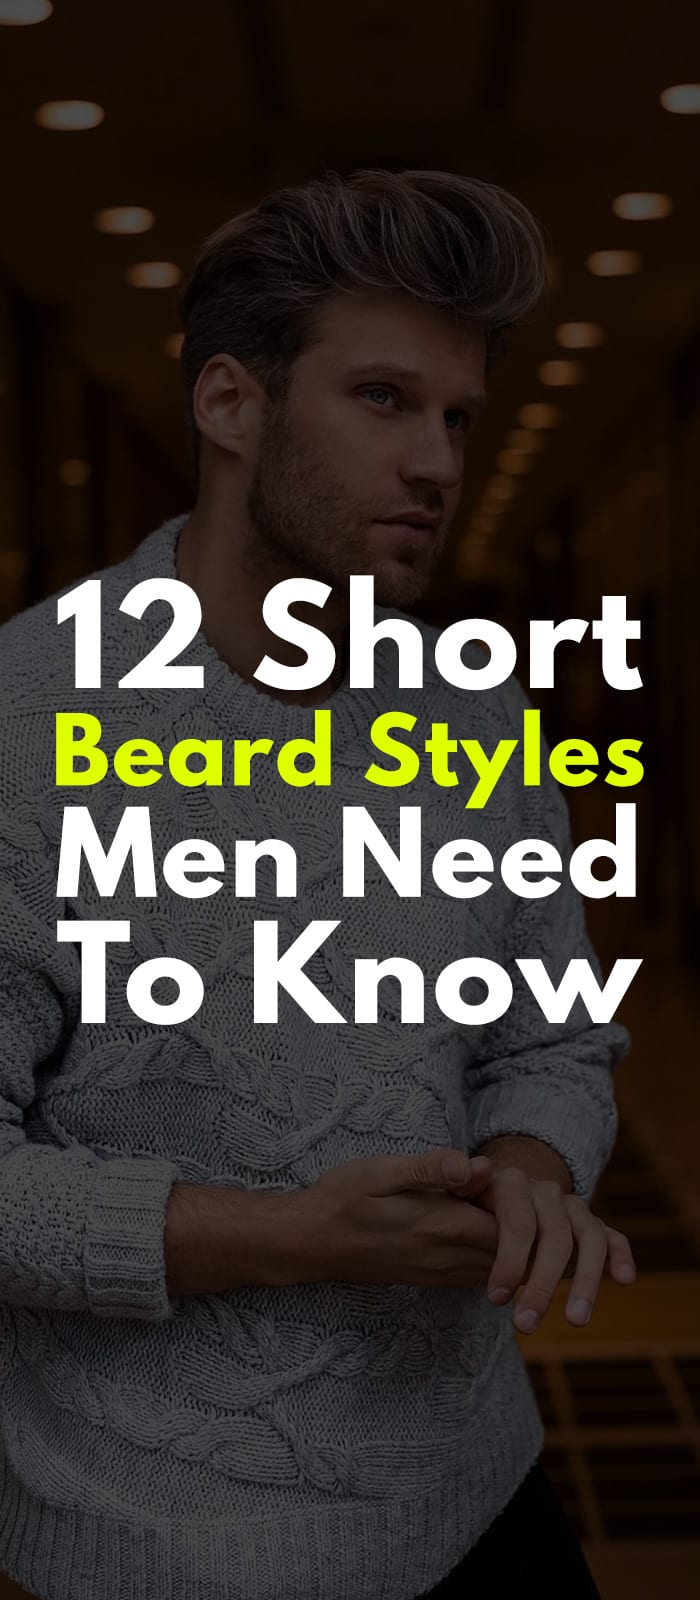 12 Short Beard Styles Men Need To Know In 2019